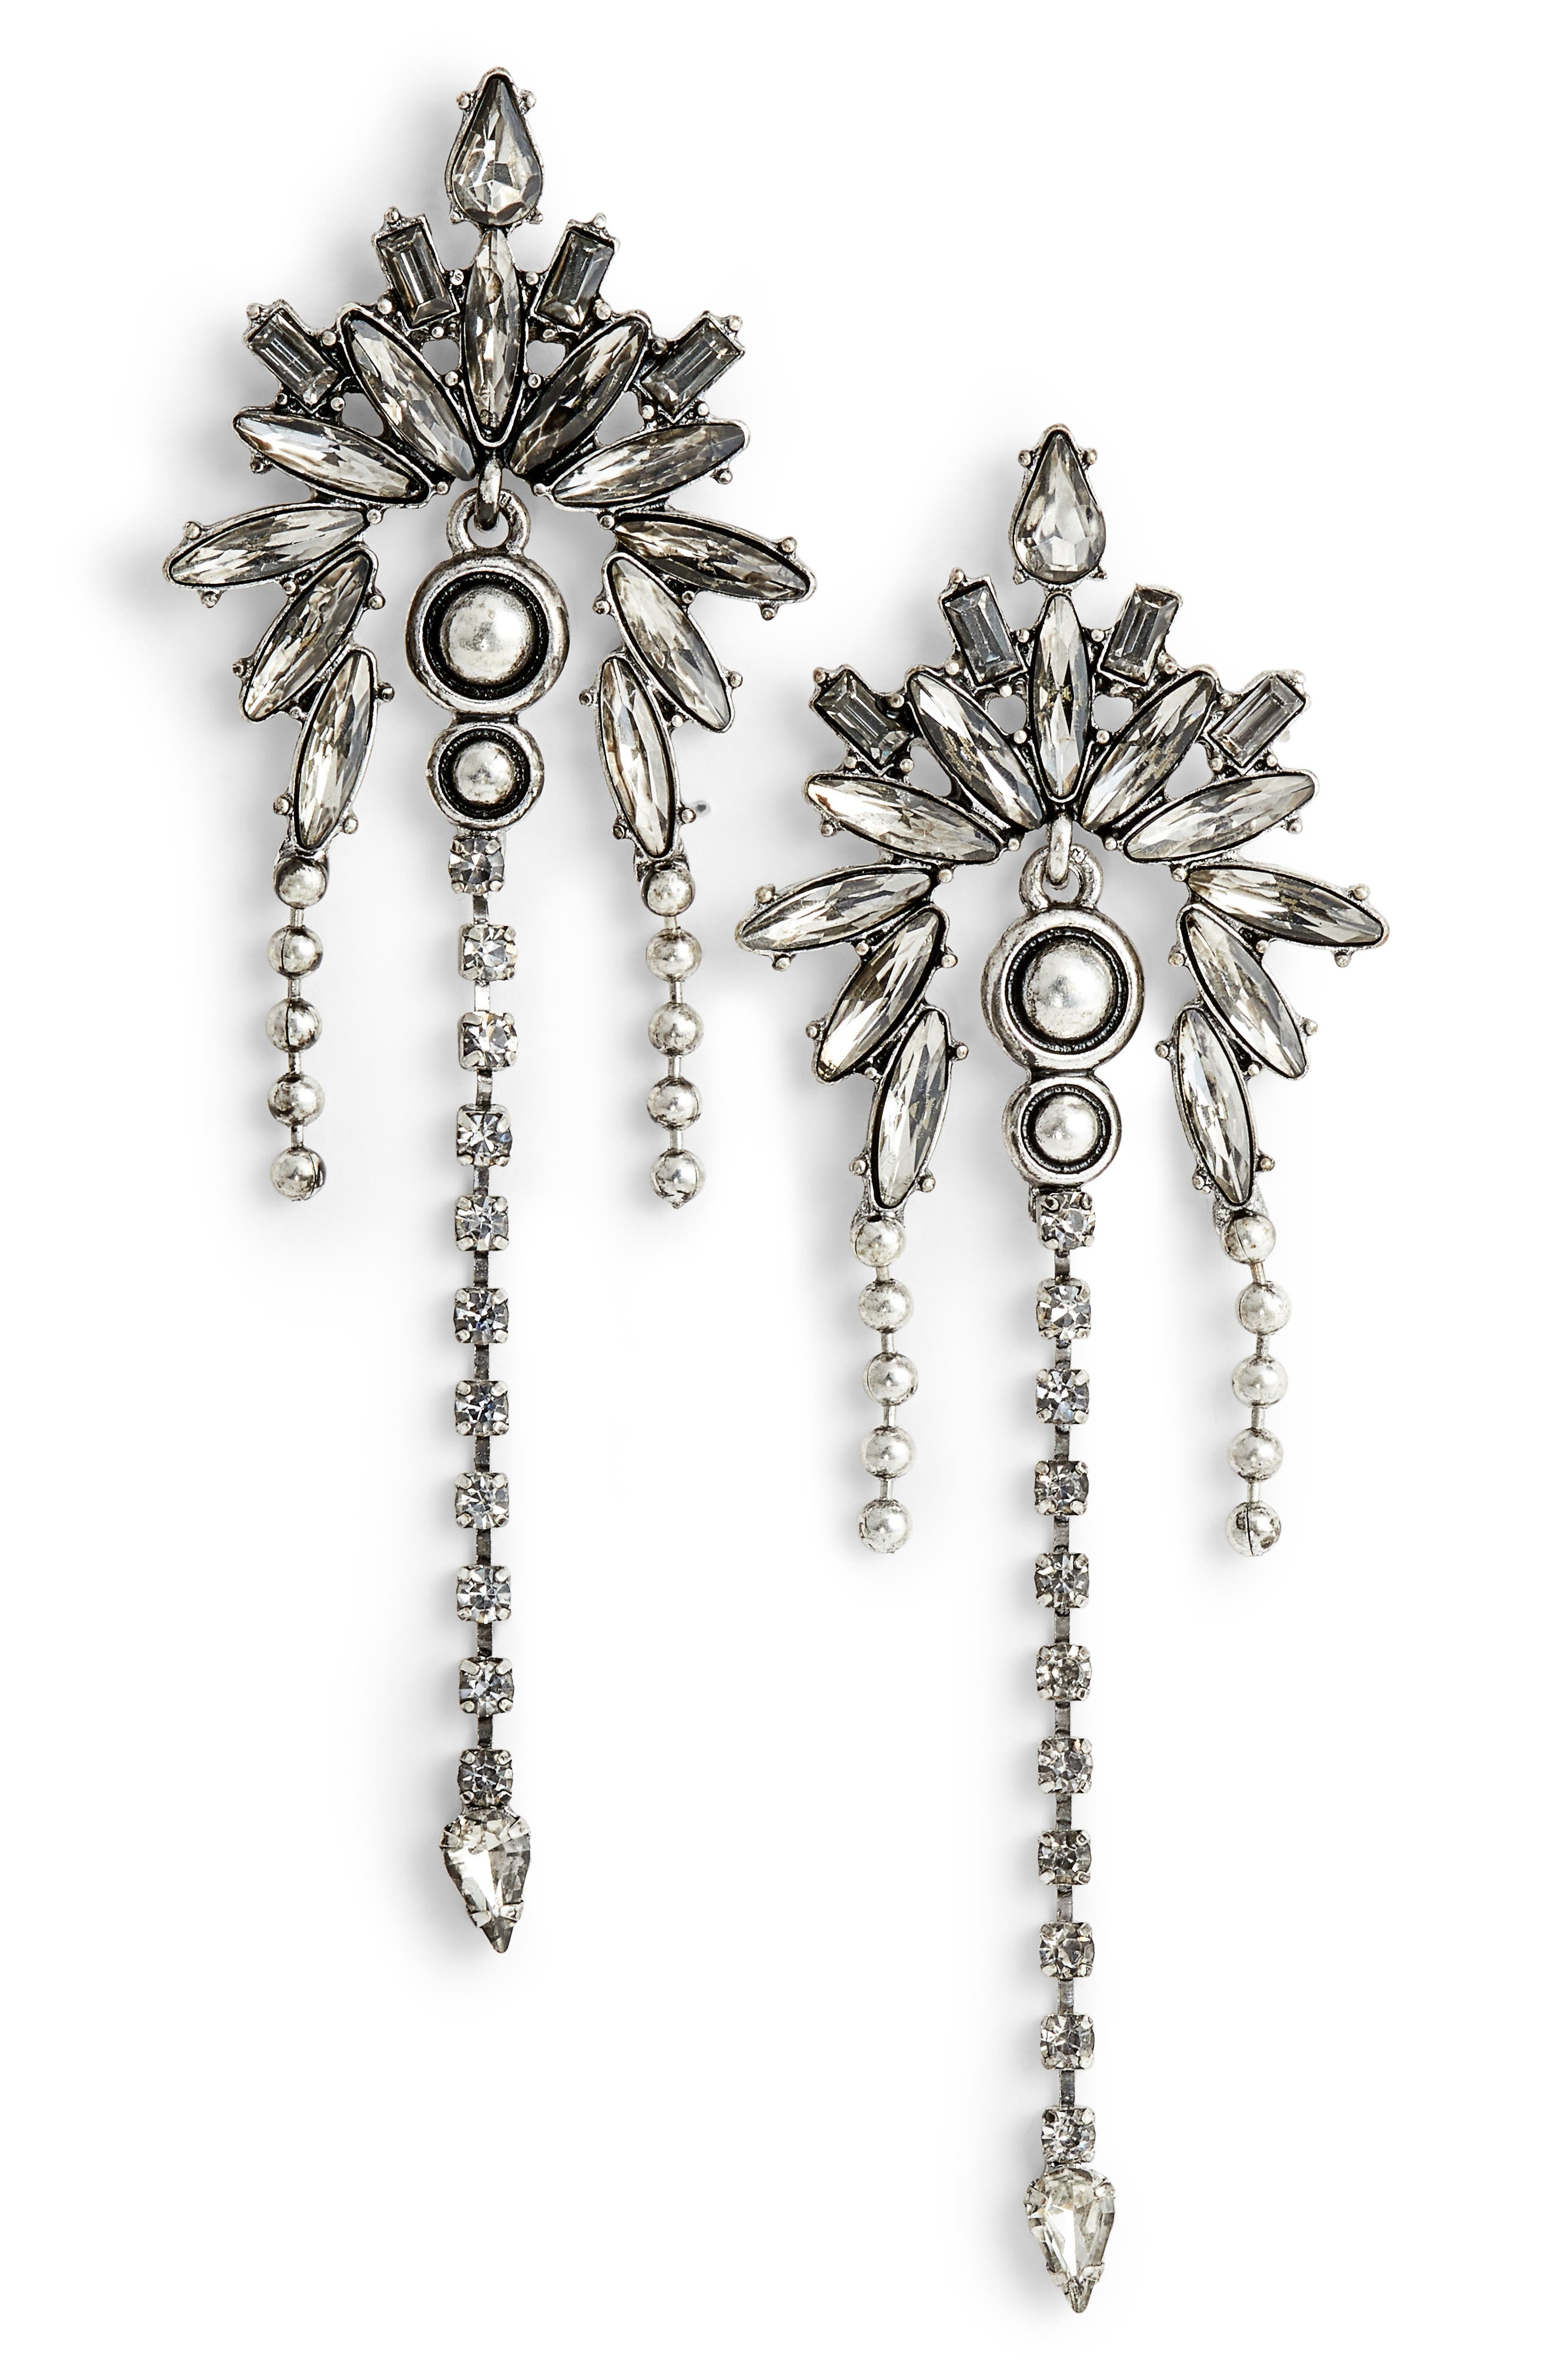 Alternate Image 1 Selected - DLNLX BY DYLANLEX Crystal Chandelier Earrings